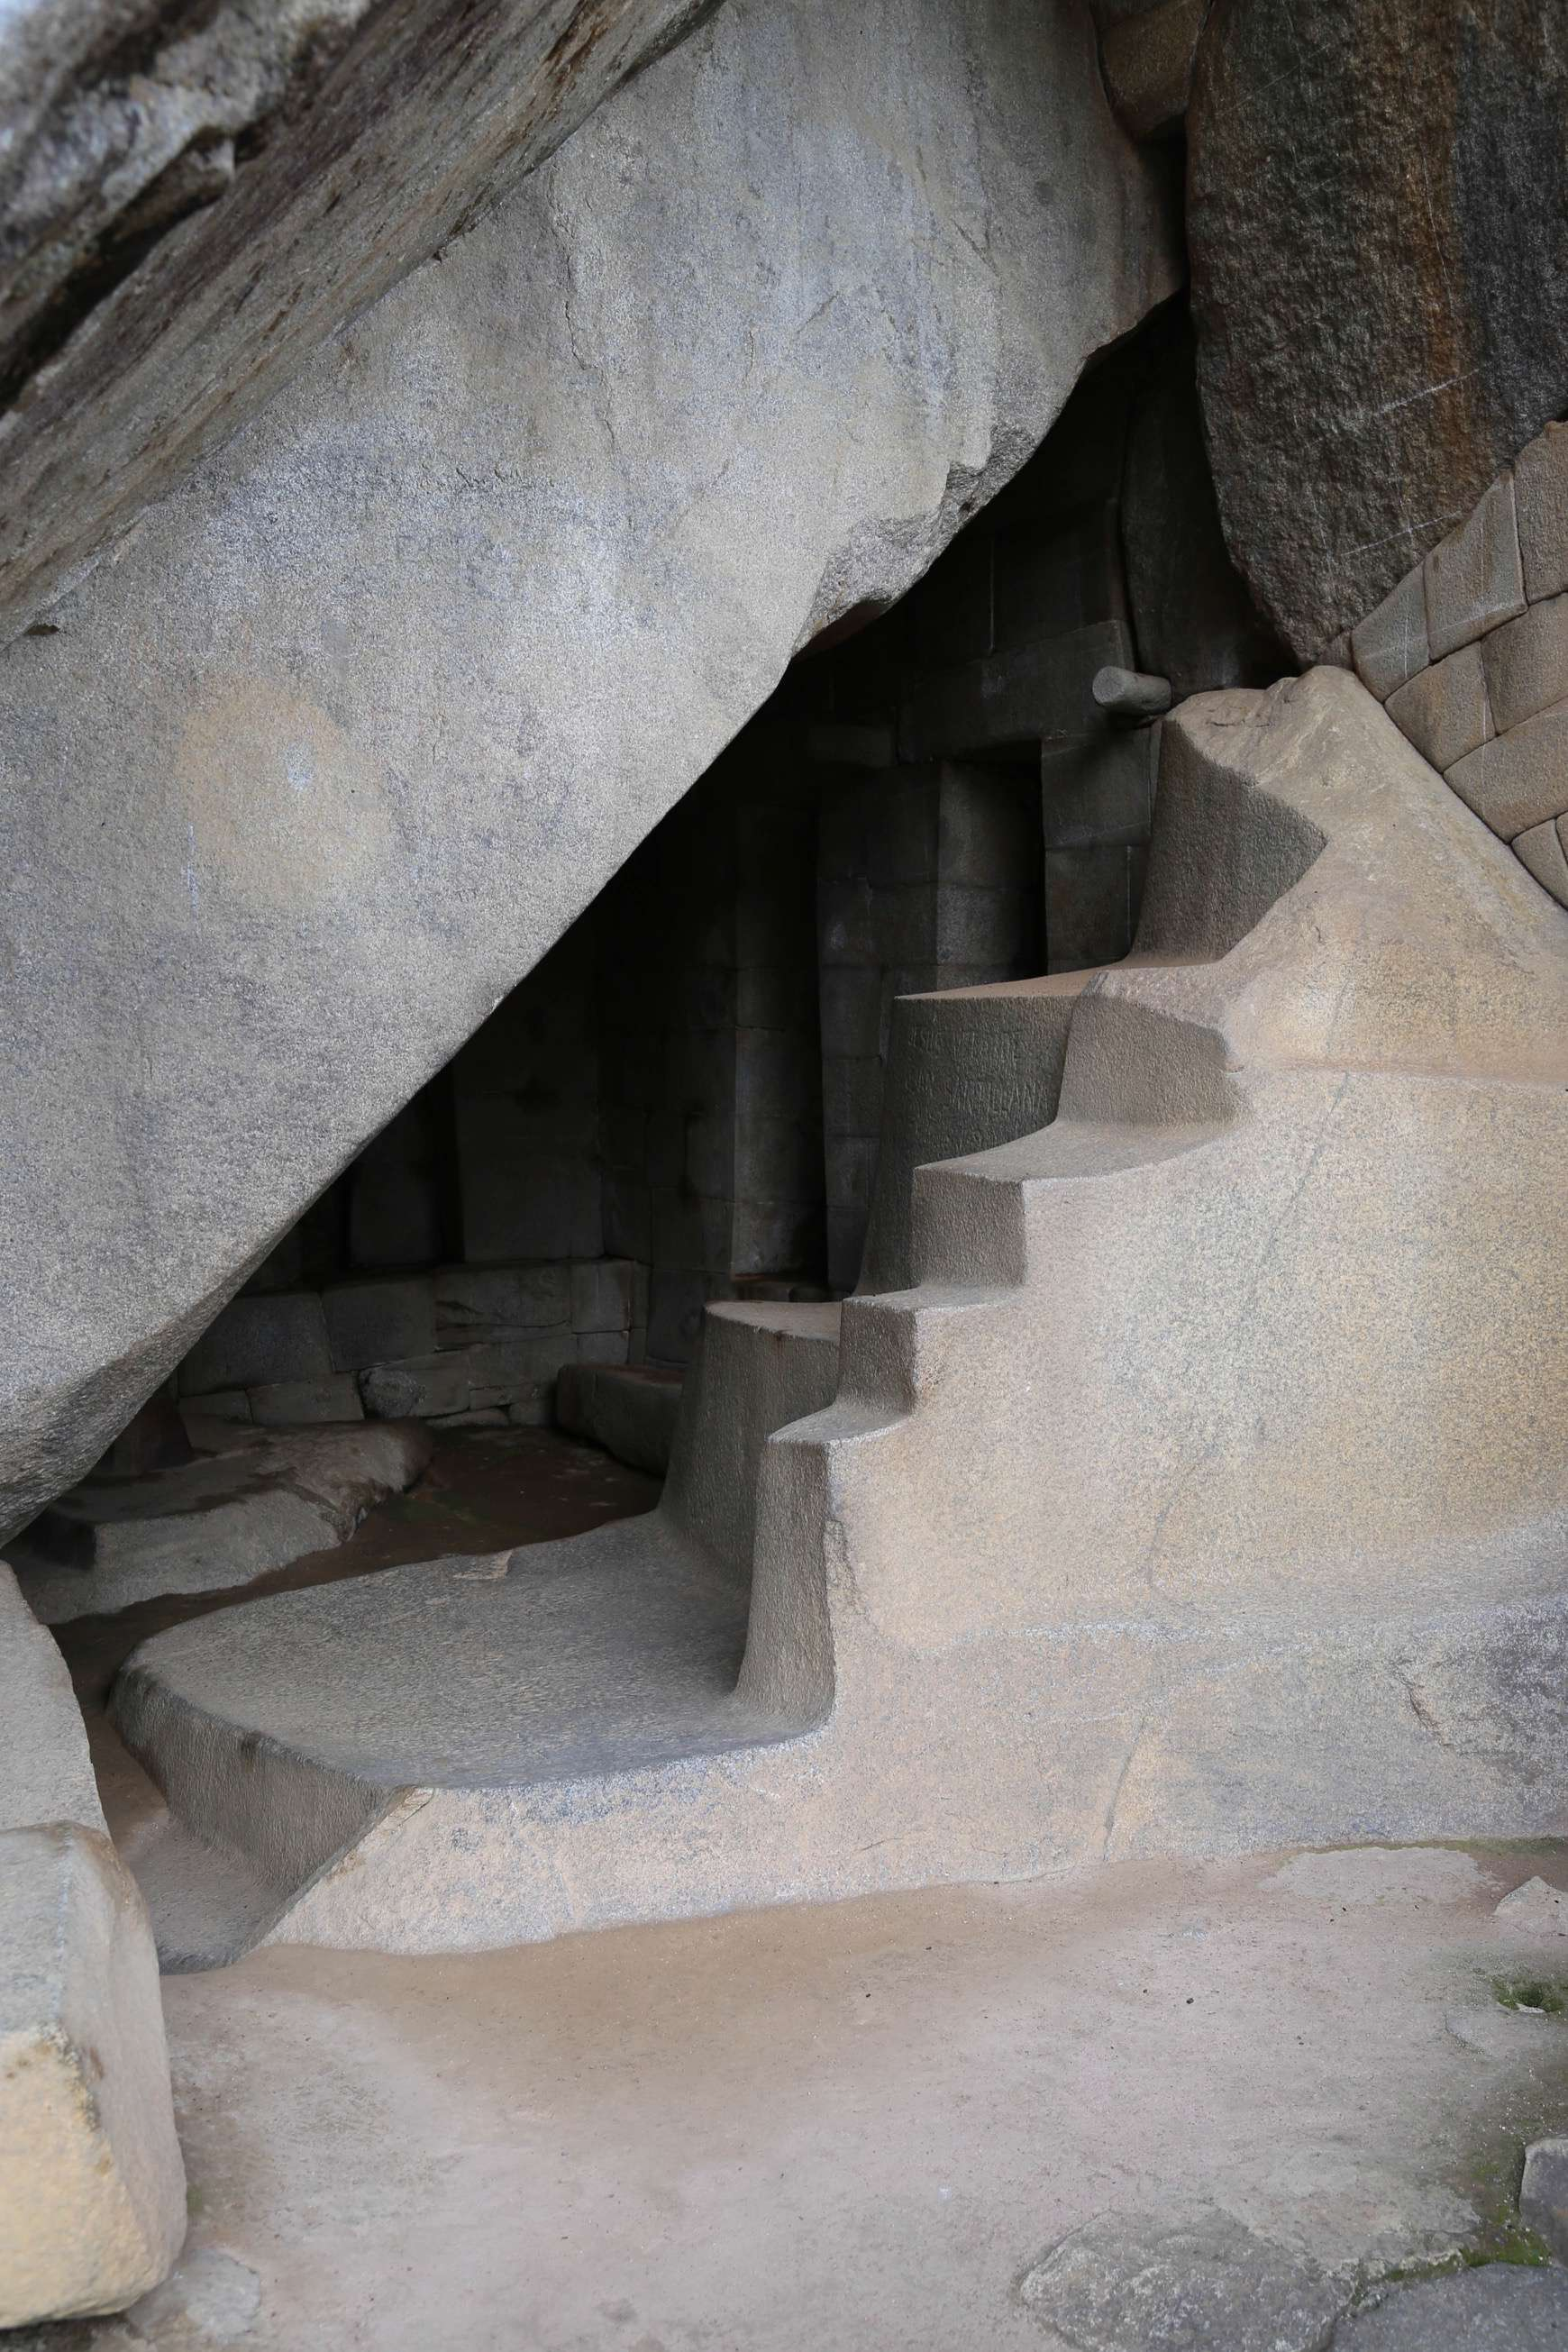 It took skill -- and determination -- to fashion these stairs from rock, using only other rocks.